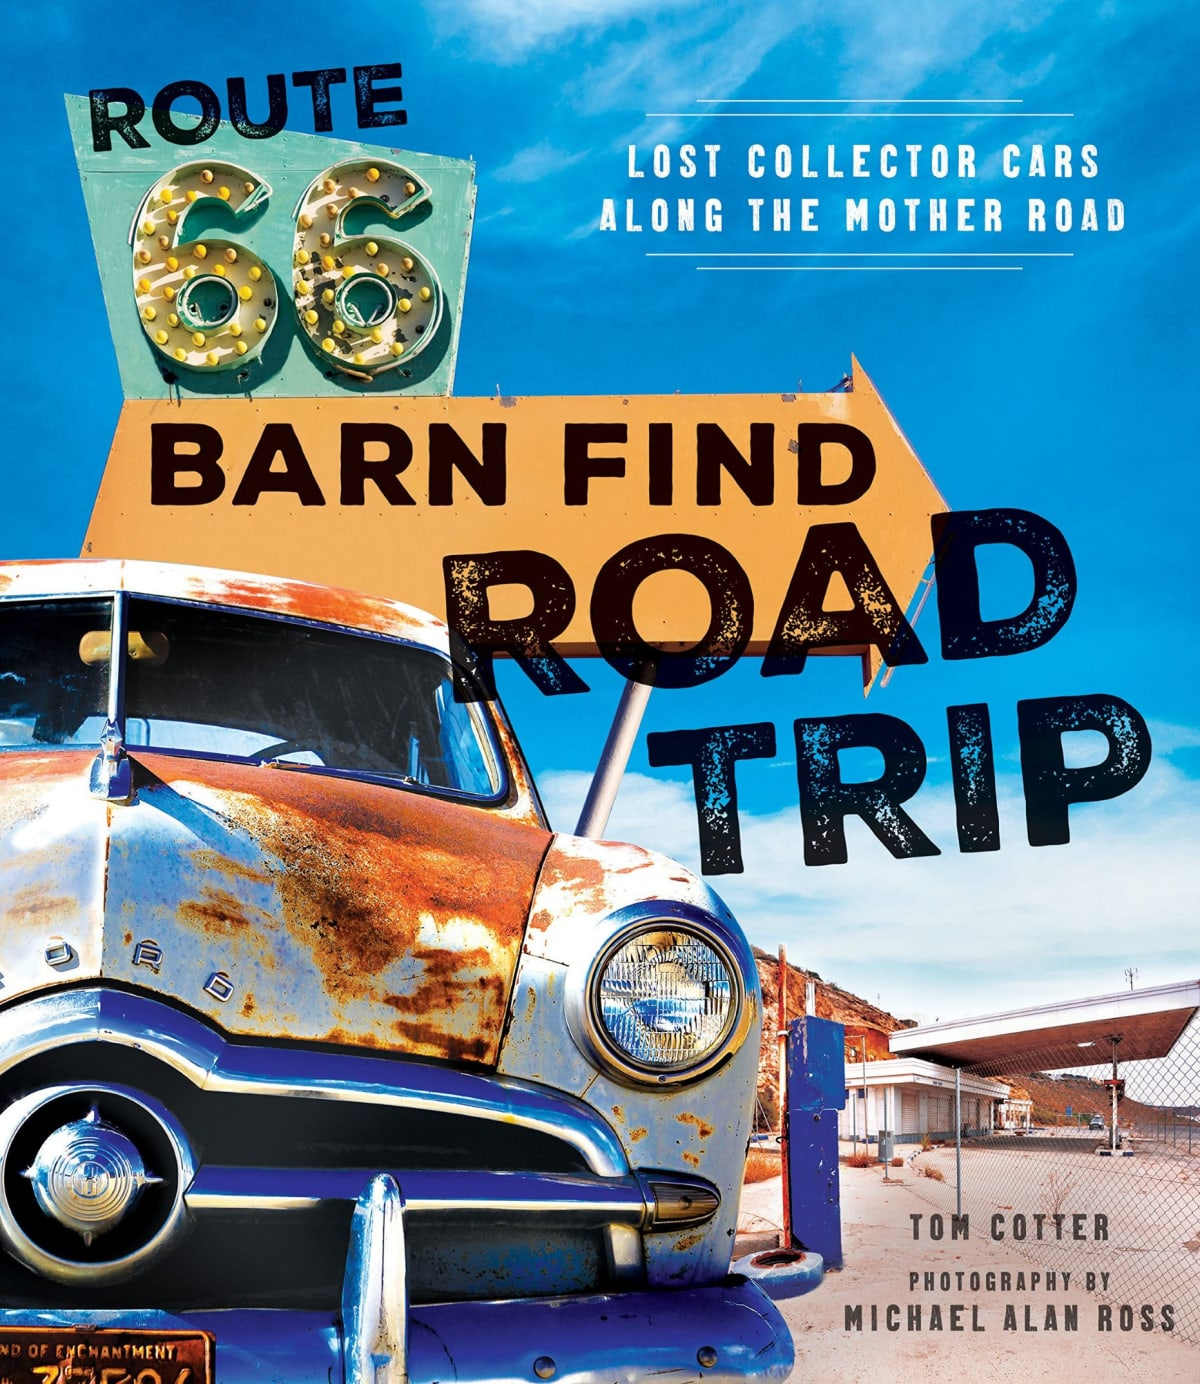 Route 66 Barn Find Road Trip by Tom Cotter. Photo courtesy of Amazon.